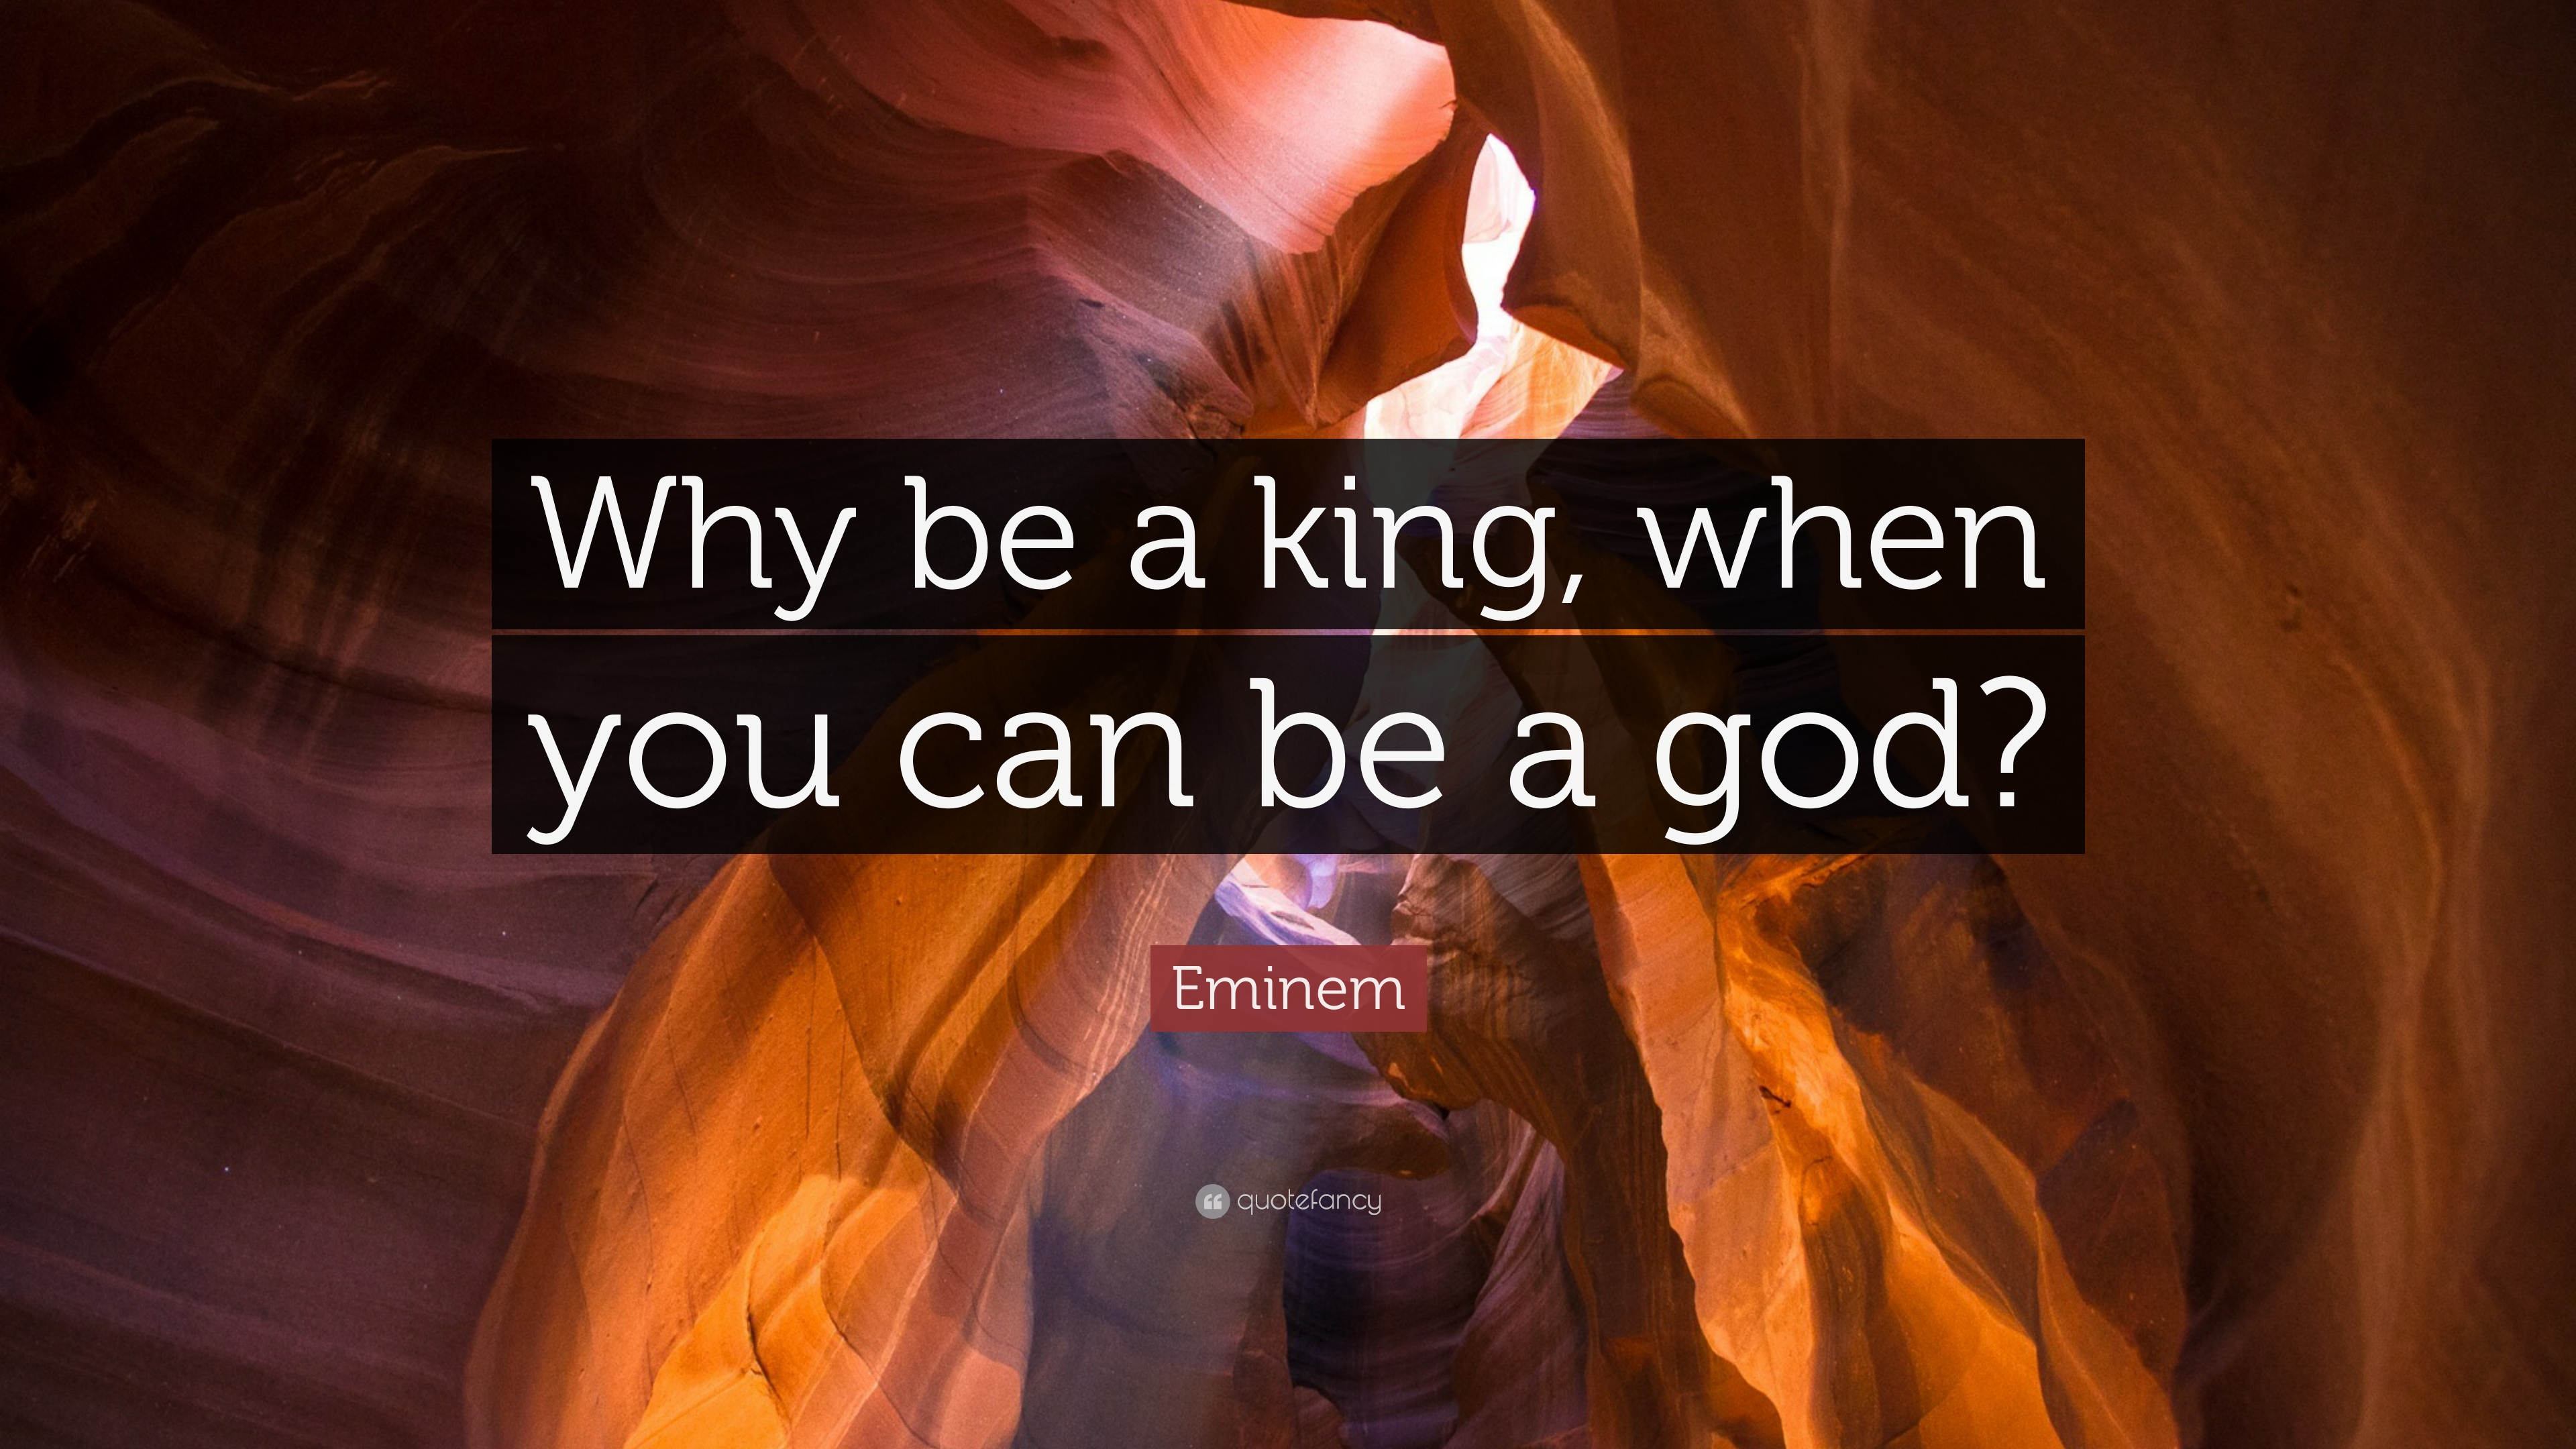 eminem quote why be a king when you can be a god 8